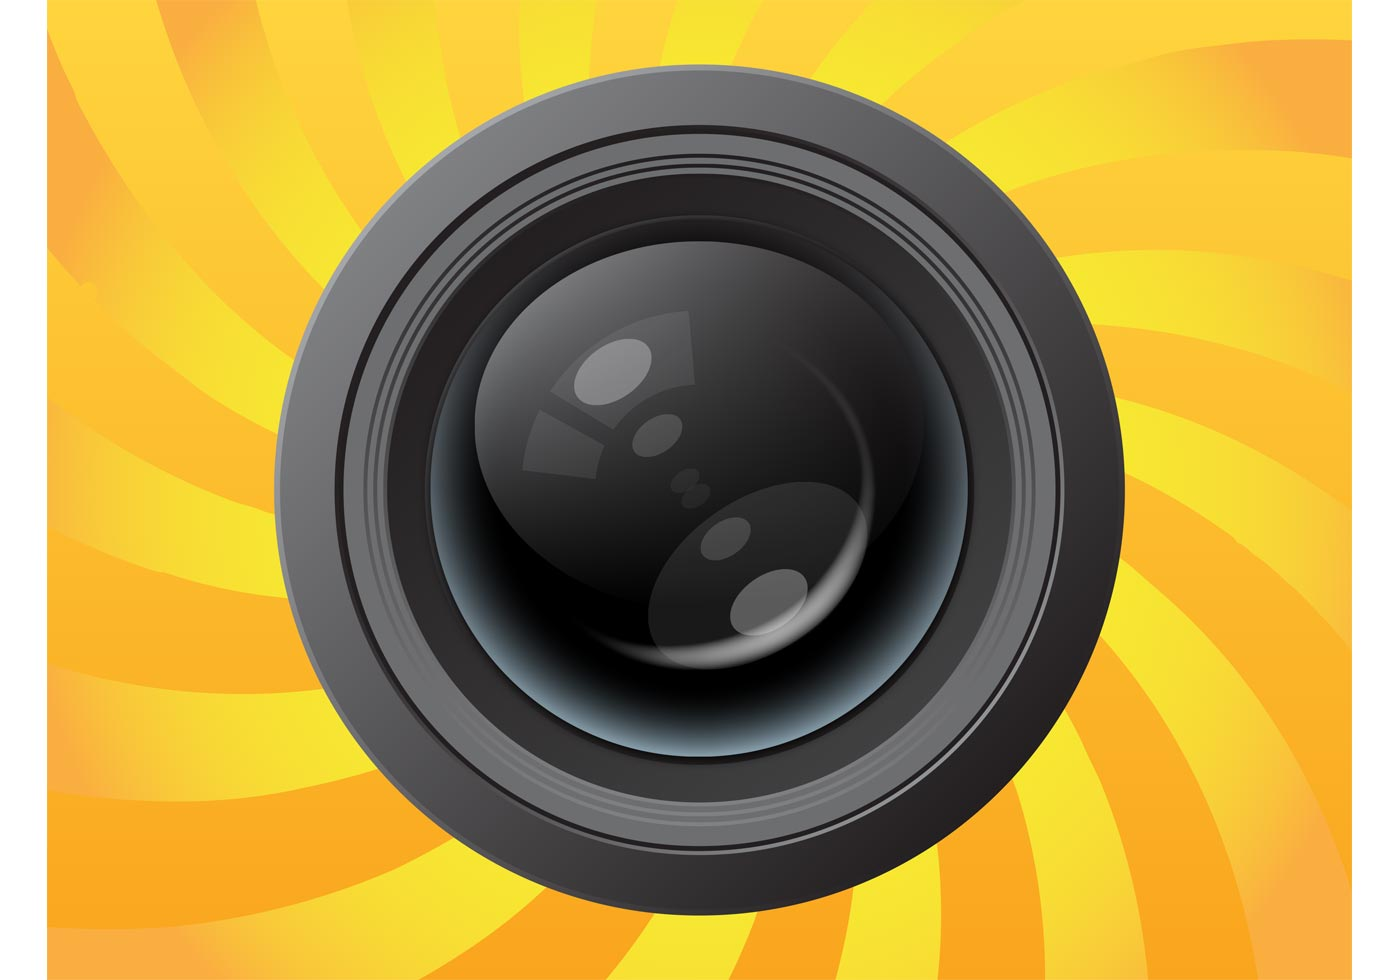 photography lens download free vector art stock